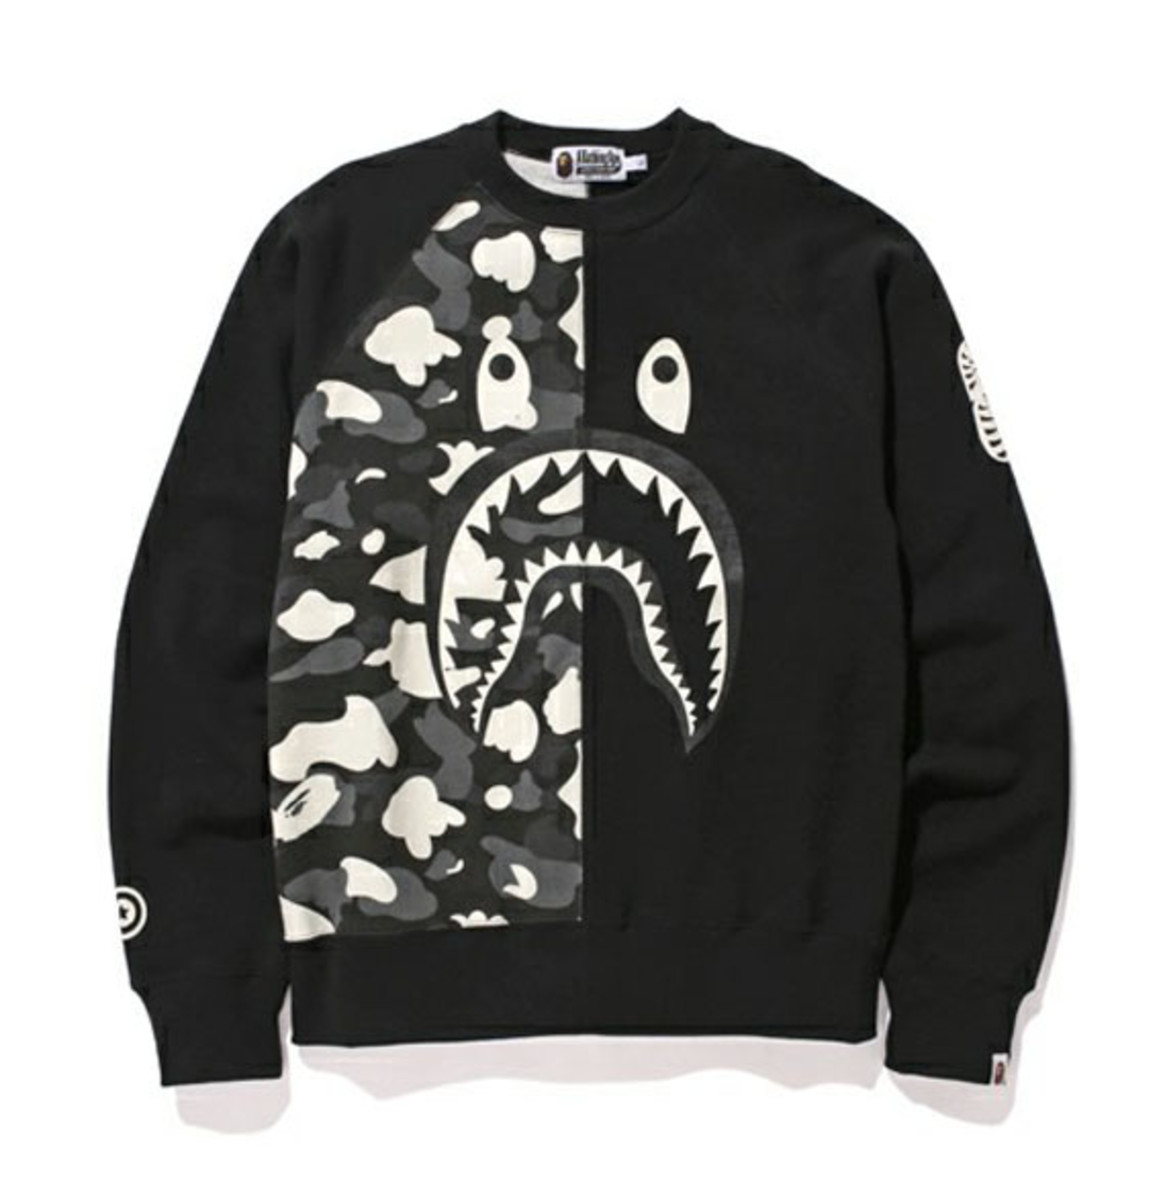 a-bathing-ape-glow-in-the-dark-collection-10